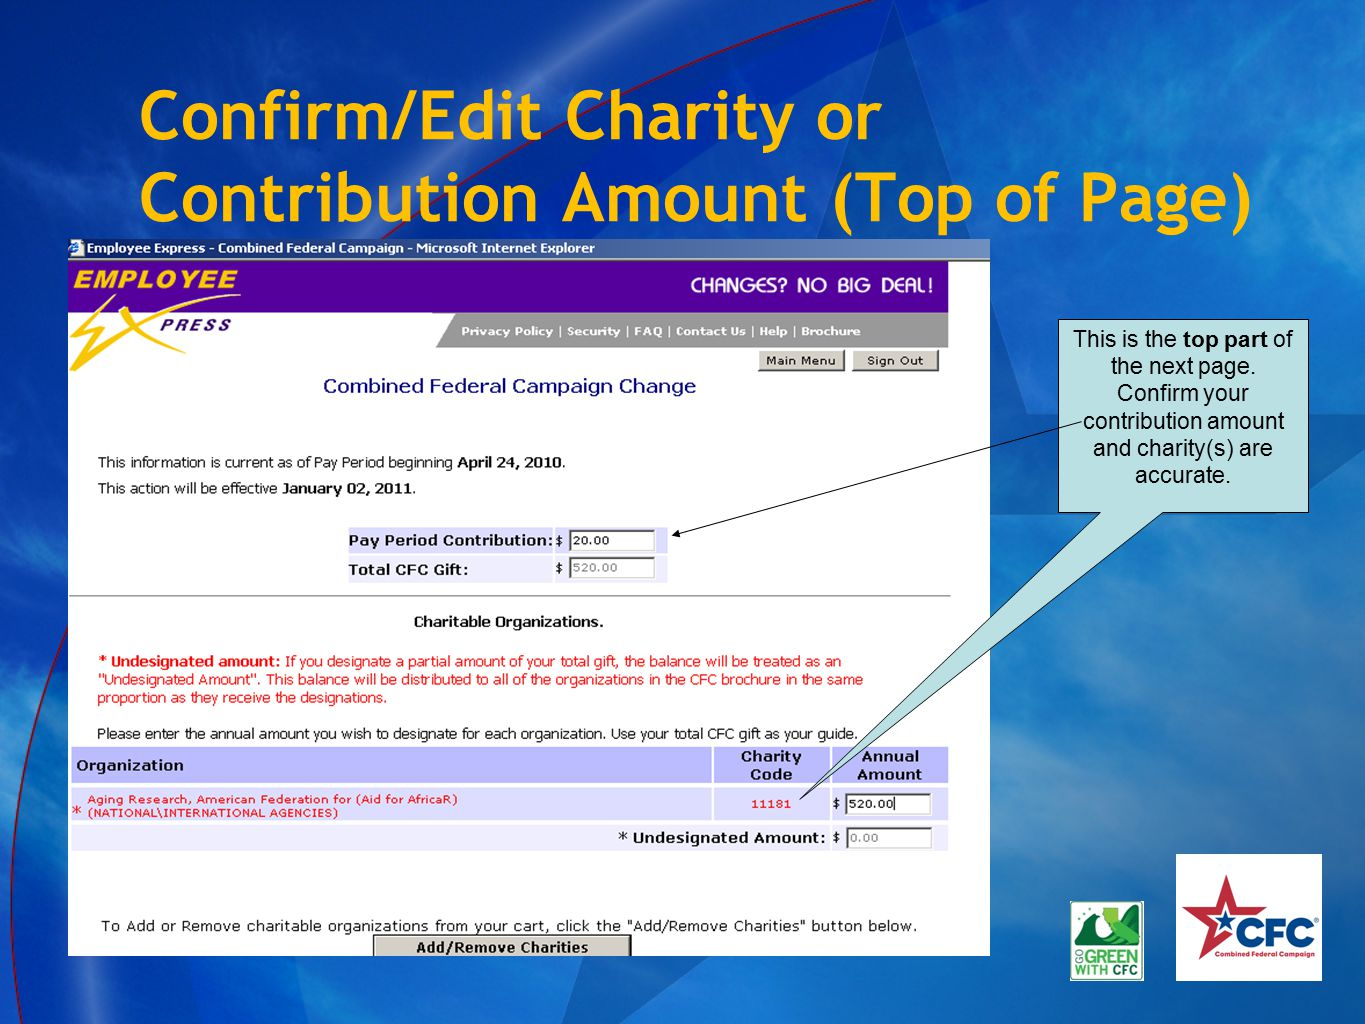 Confirm/Edit Charity or Contribution Amount (Top of Page) This is the top part of the next page.